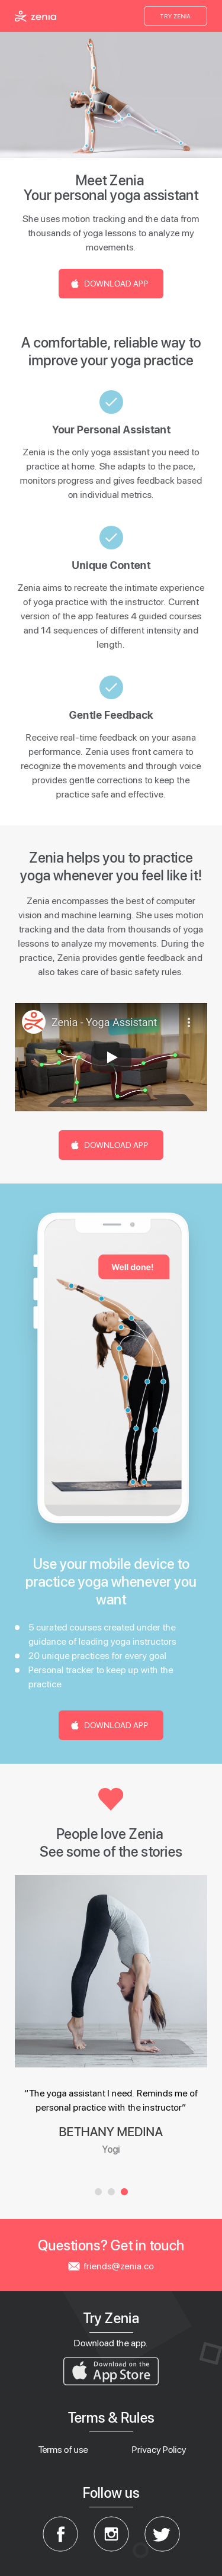 Example of Design for Beauty & Fitness, Fitness, Mobile Landing Page by zenia.app | Mobile Landing Page Design